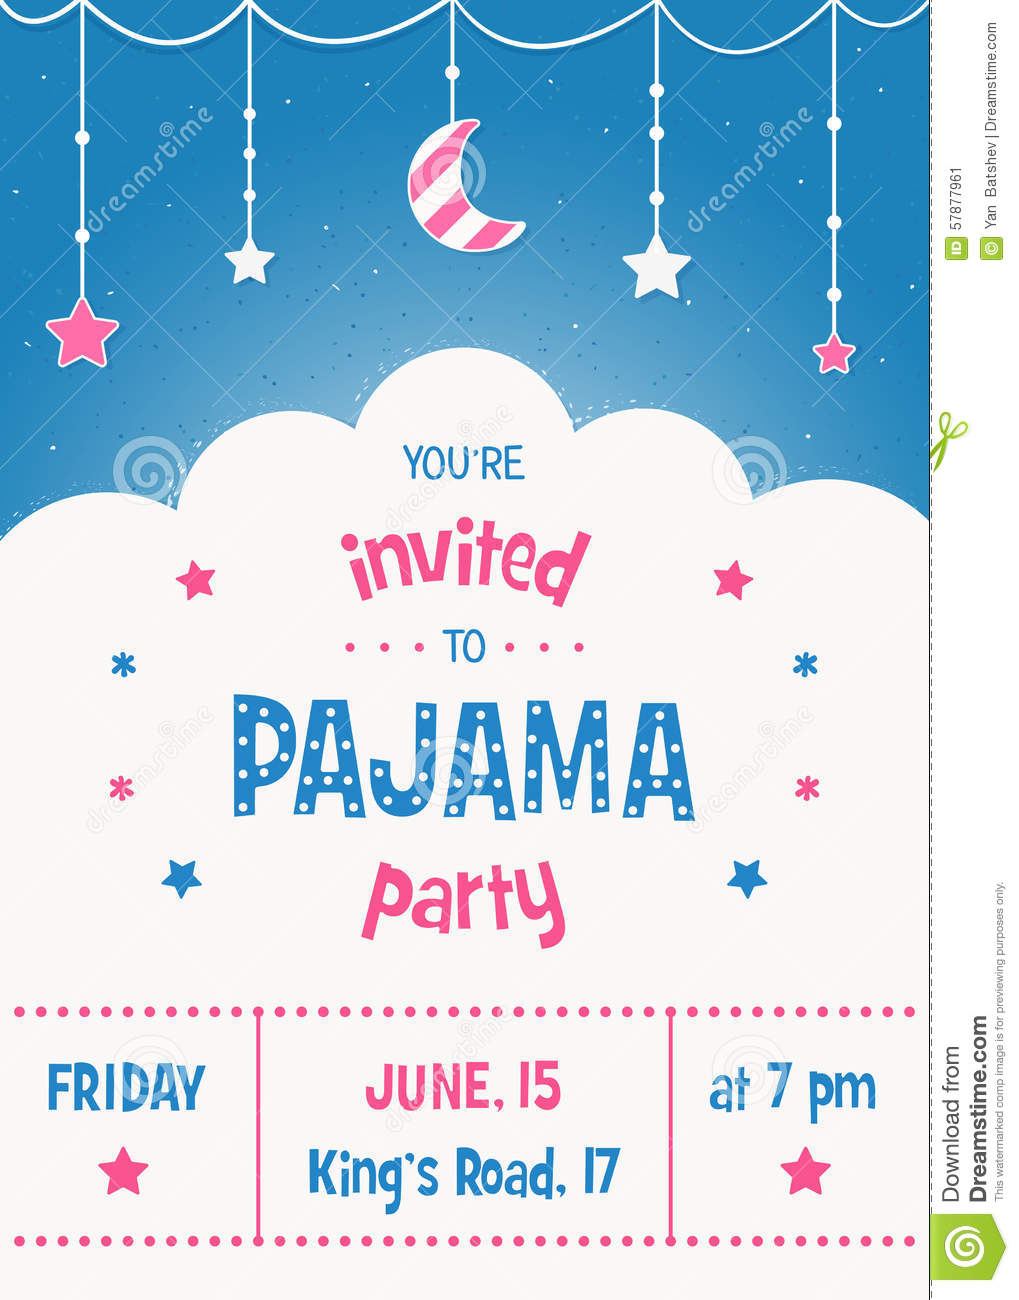 Pajama Party Invitation Card Template With Stars Moon And Clouds regarding sizing 1019 X 1300